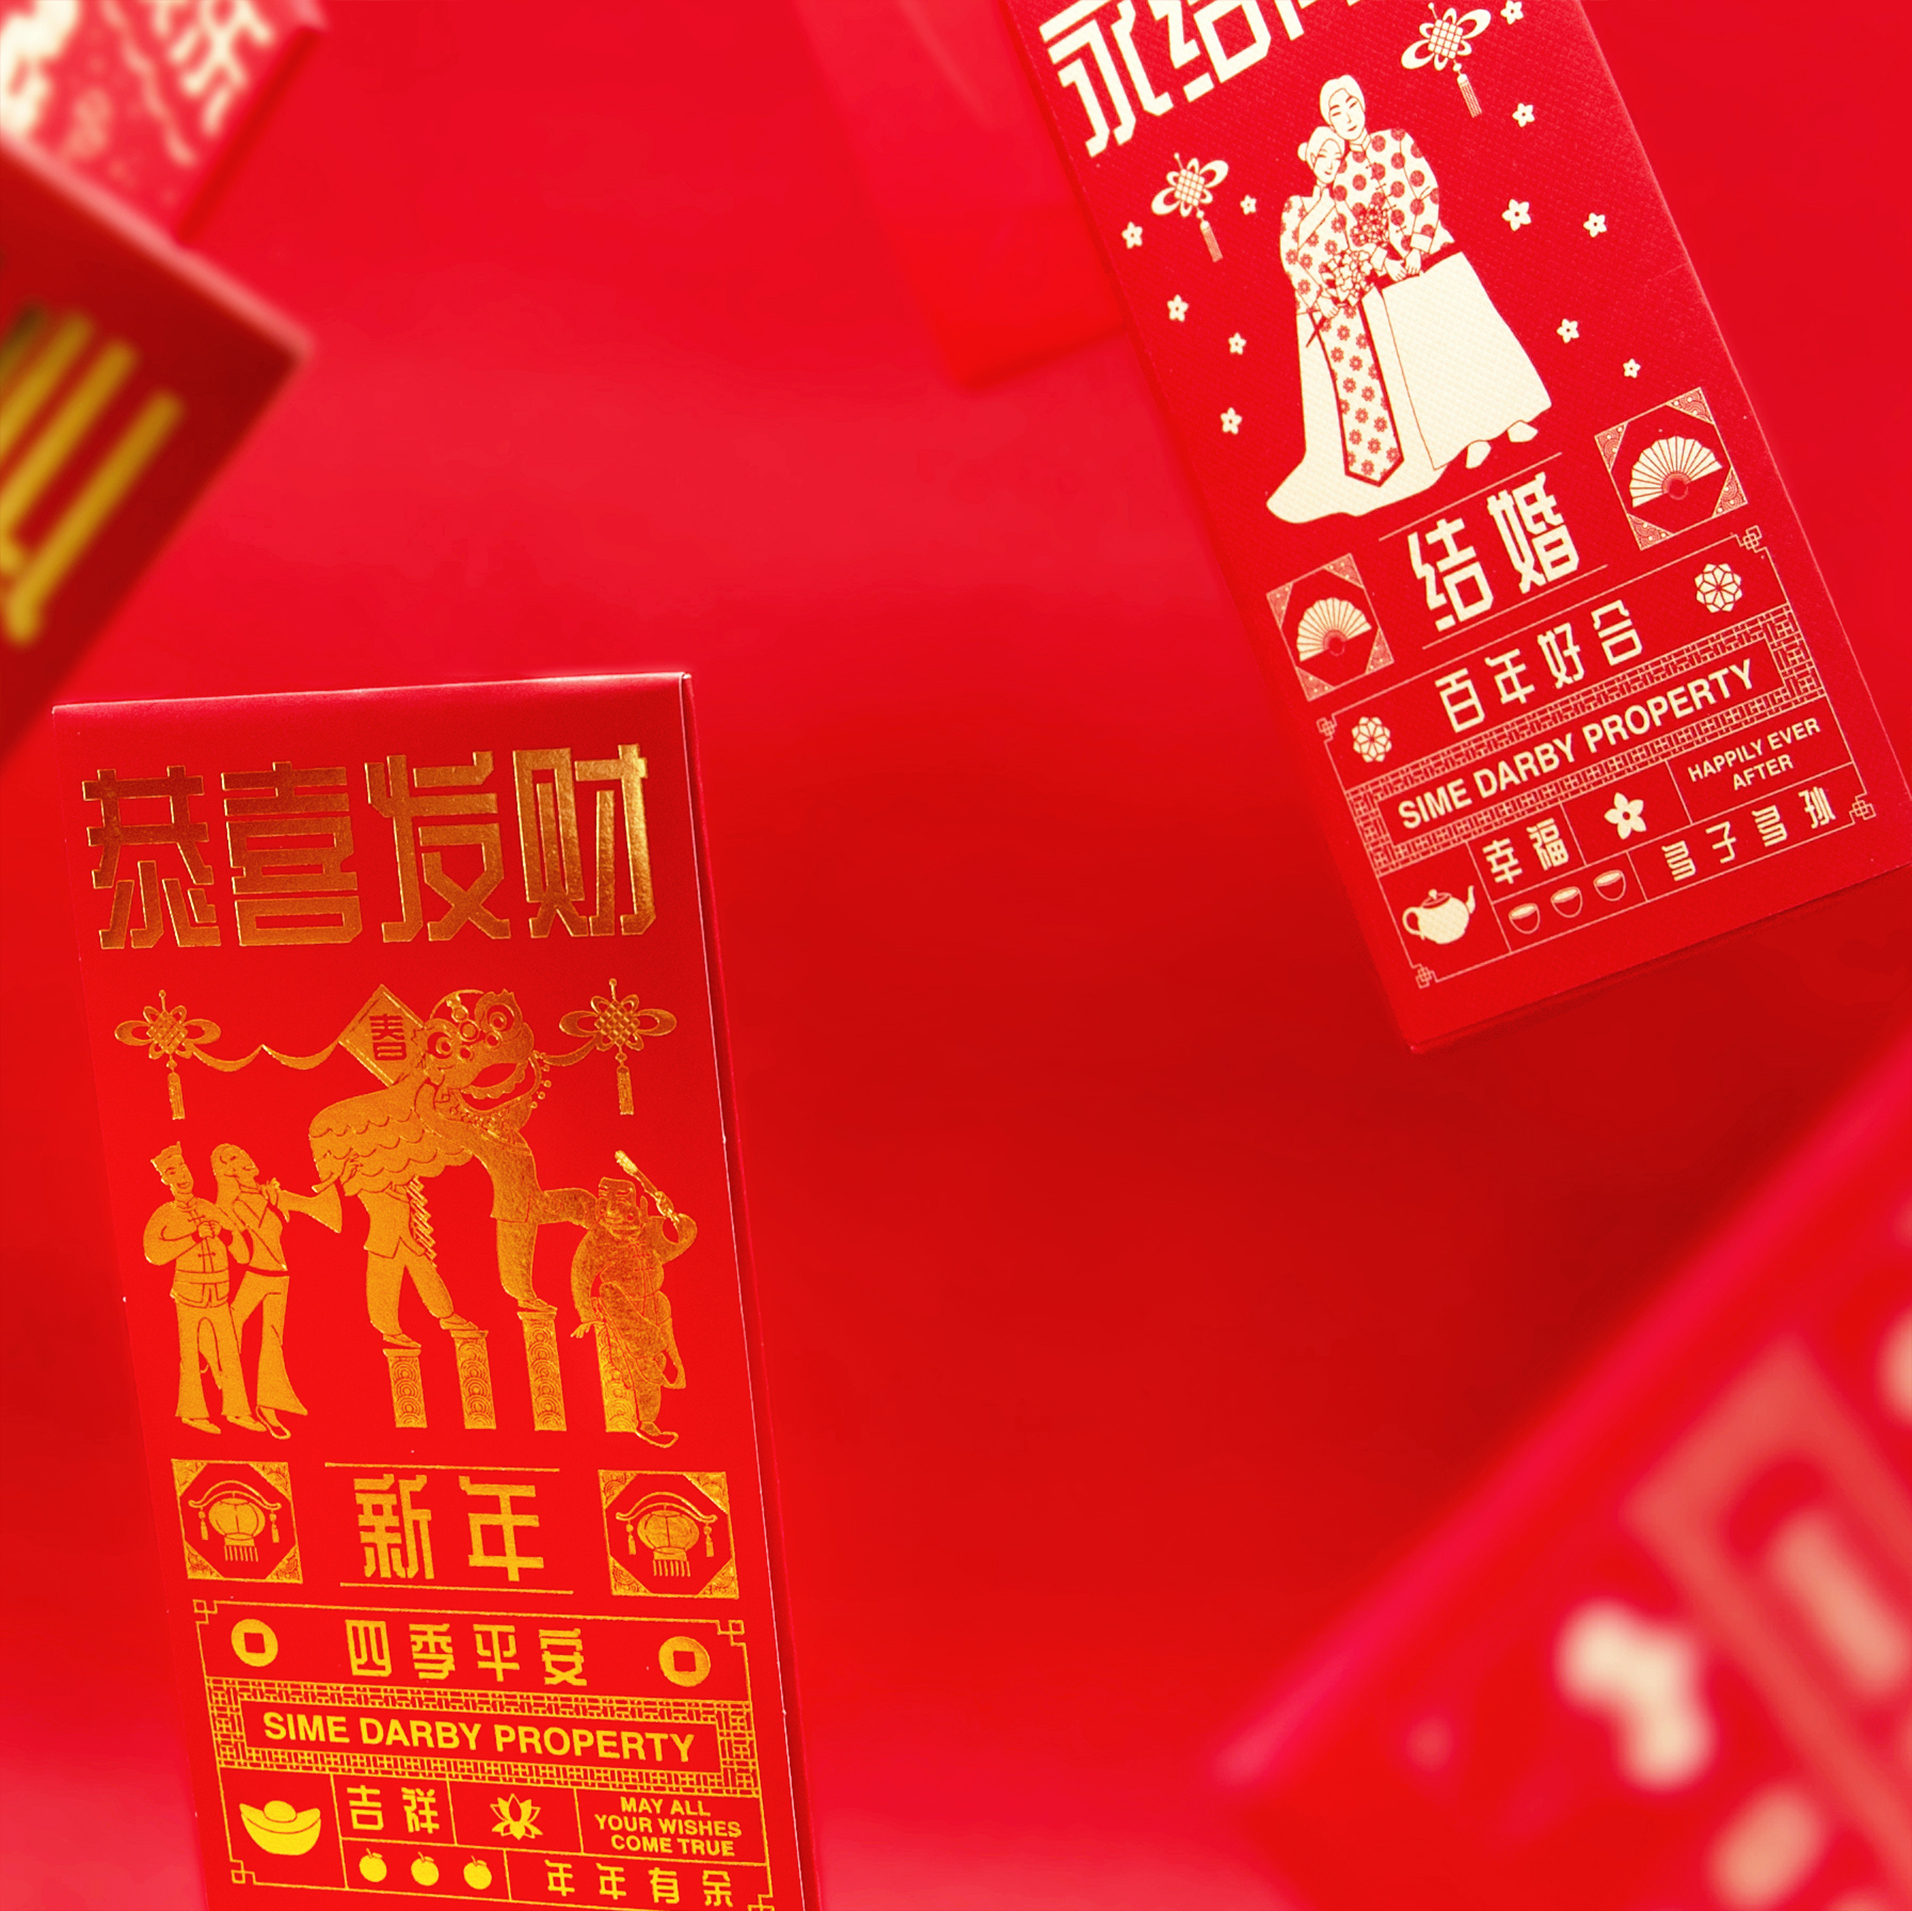 Sime Darby Chinese New Year 2020 red packet or ang pow with gold foiling printing, with product photography of falling red packet